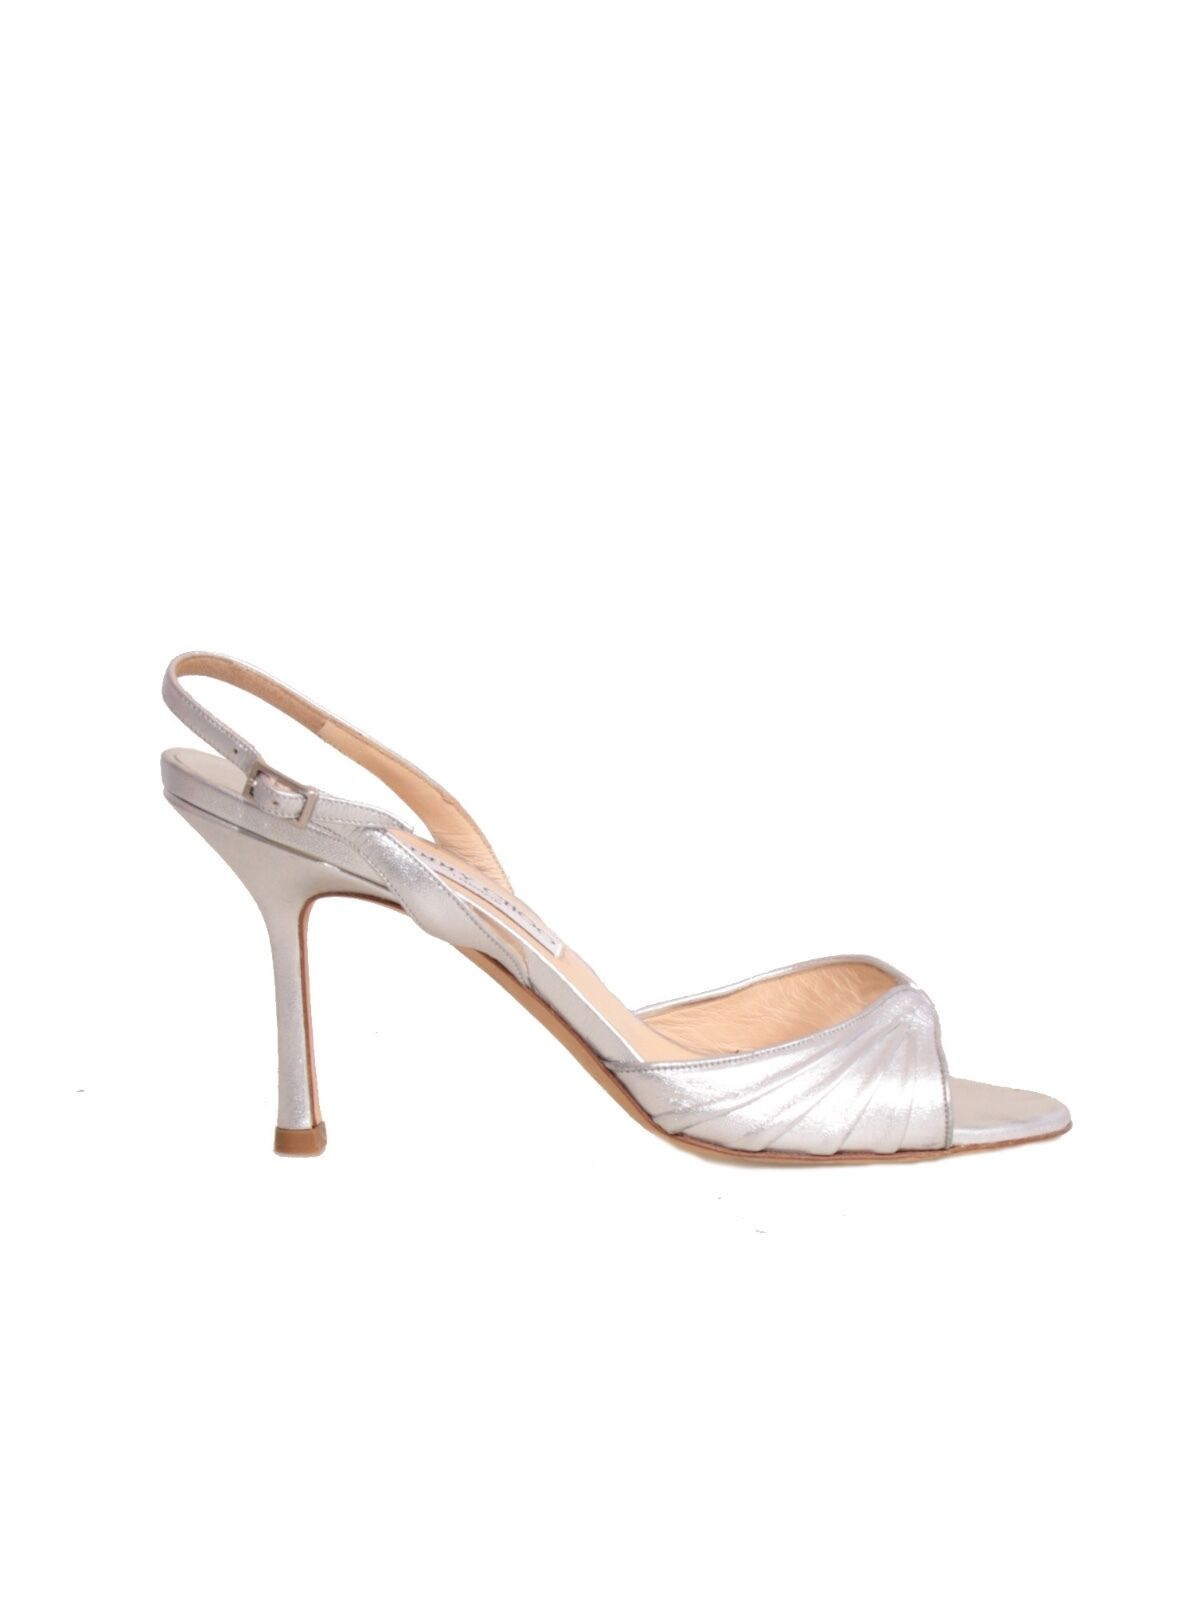 JIMMY CHOO Metallic Slingback Sandals argent (Taille 38)